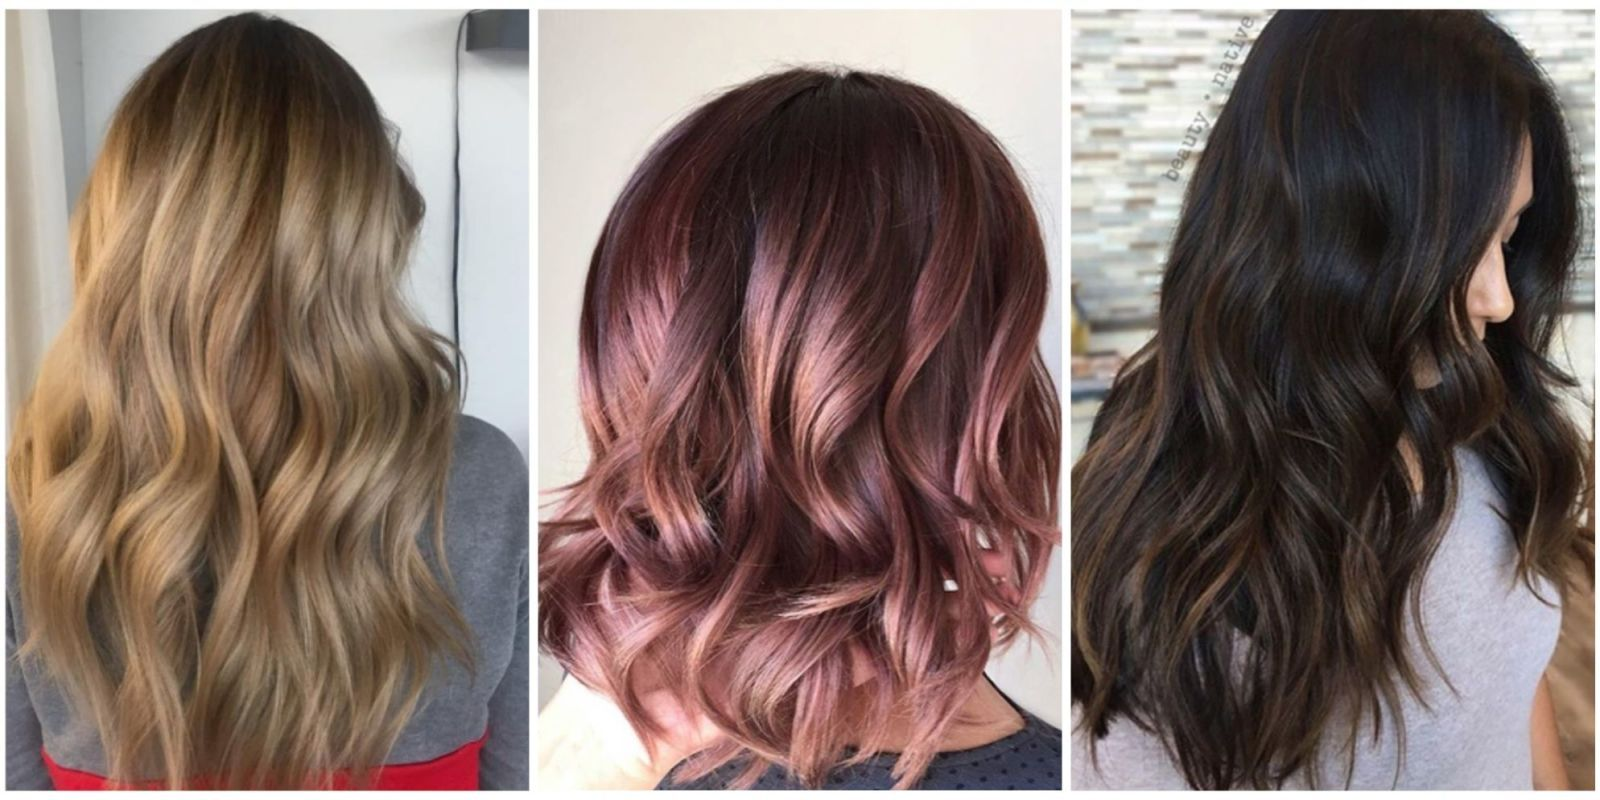 Hairstyle Ideas To Shake Up Your Look picture